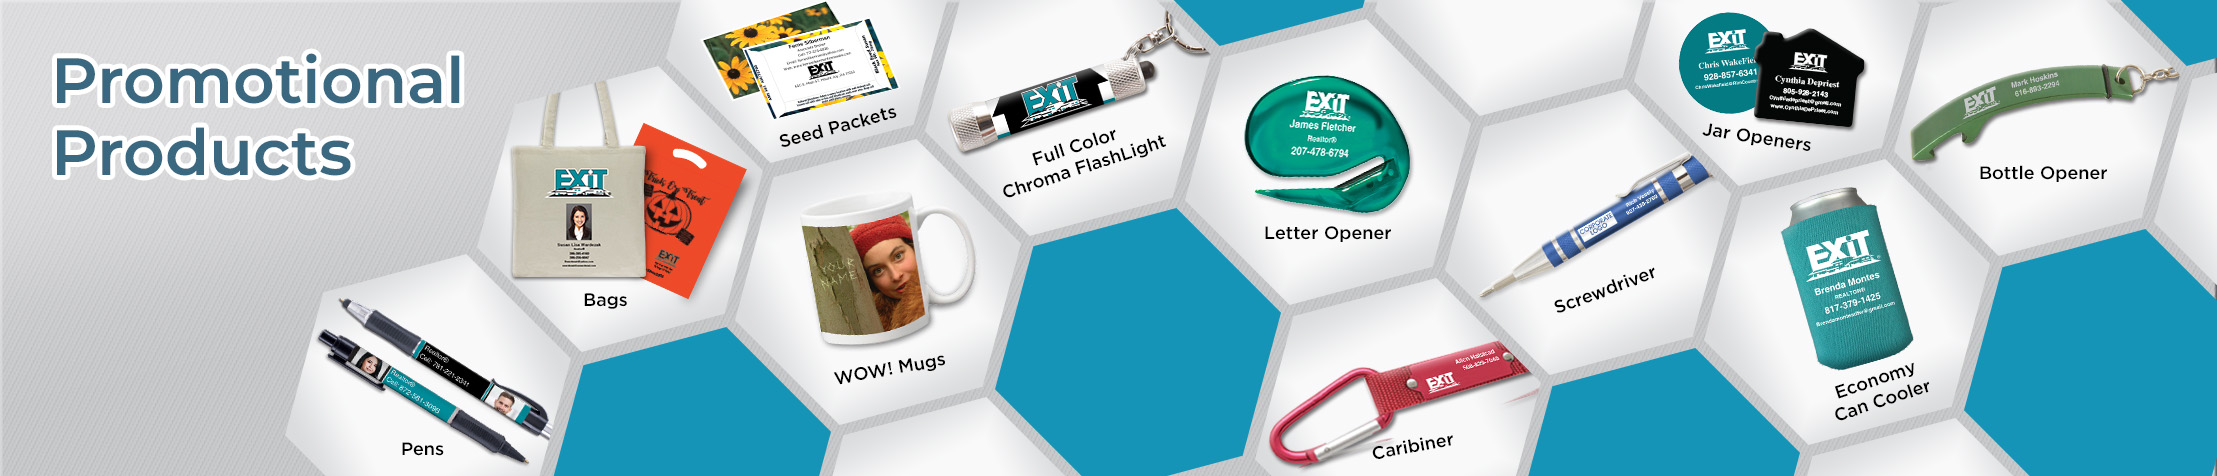 Exit Realty Real Estate Promotional Products - Exit Realty approved vendor personalized promotional pens, key chains, tote bags, flashlights, mugs | BestPrintBuy.com